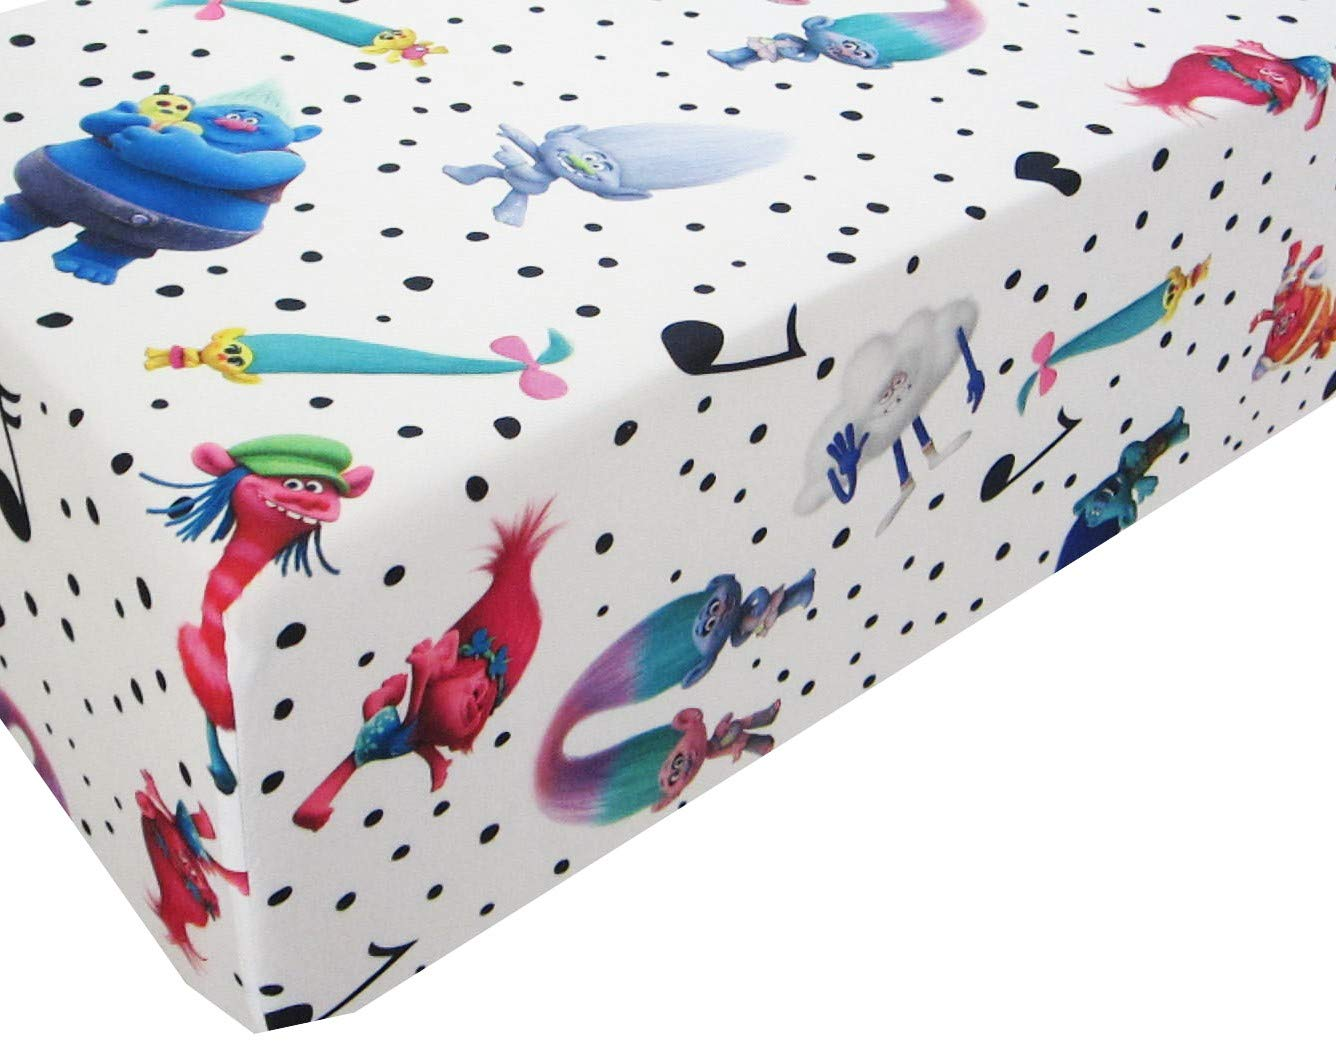 Trolls Life The Happy Trolls Love Life 100% Polyester (Fitted Sheet ONLY) Size Twin Girls Kids Bedding